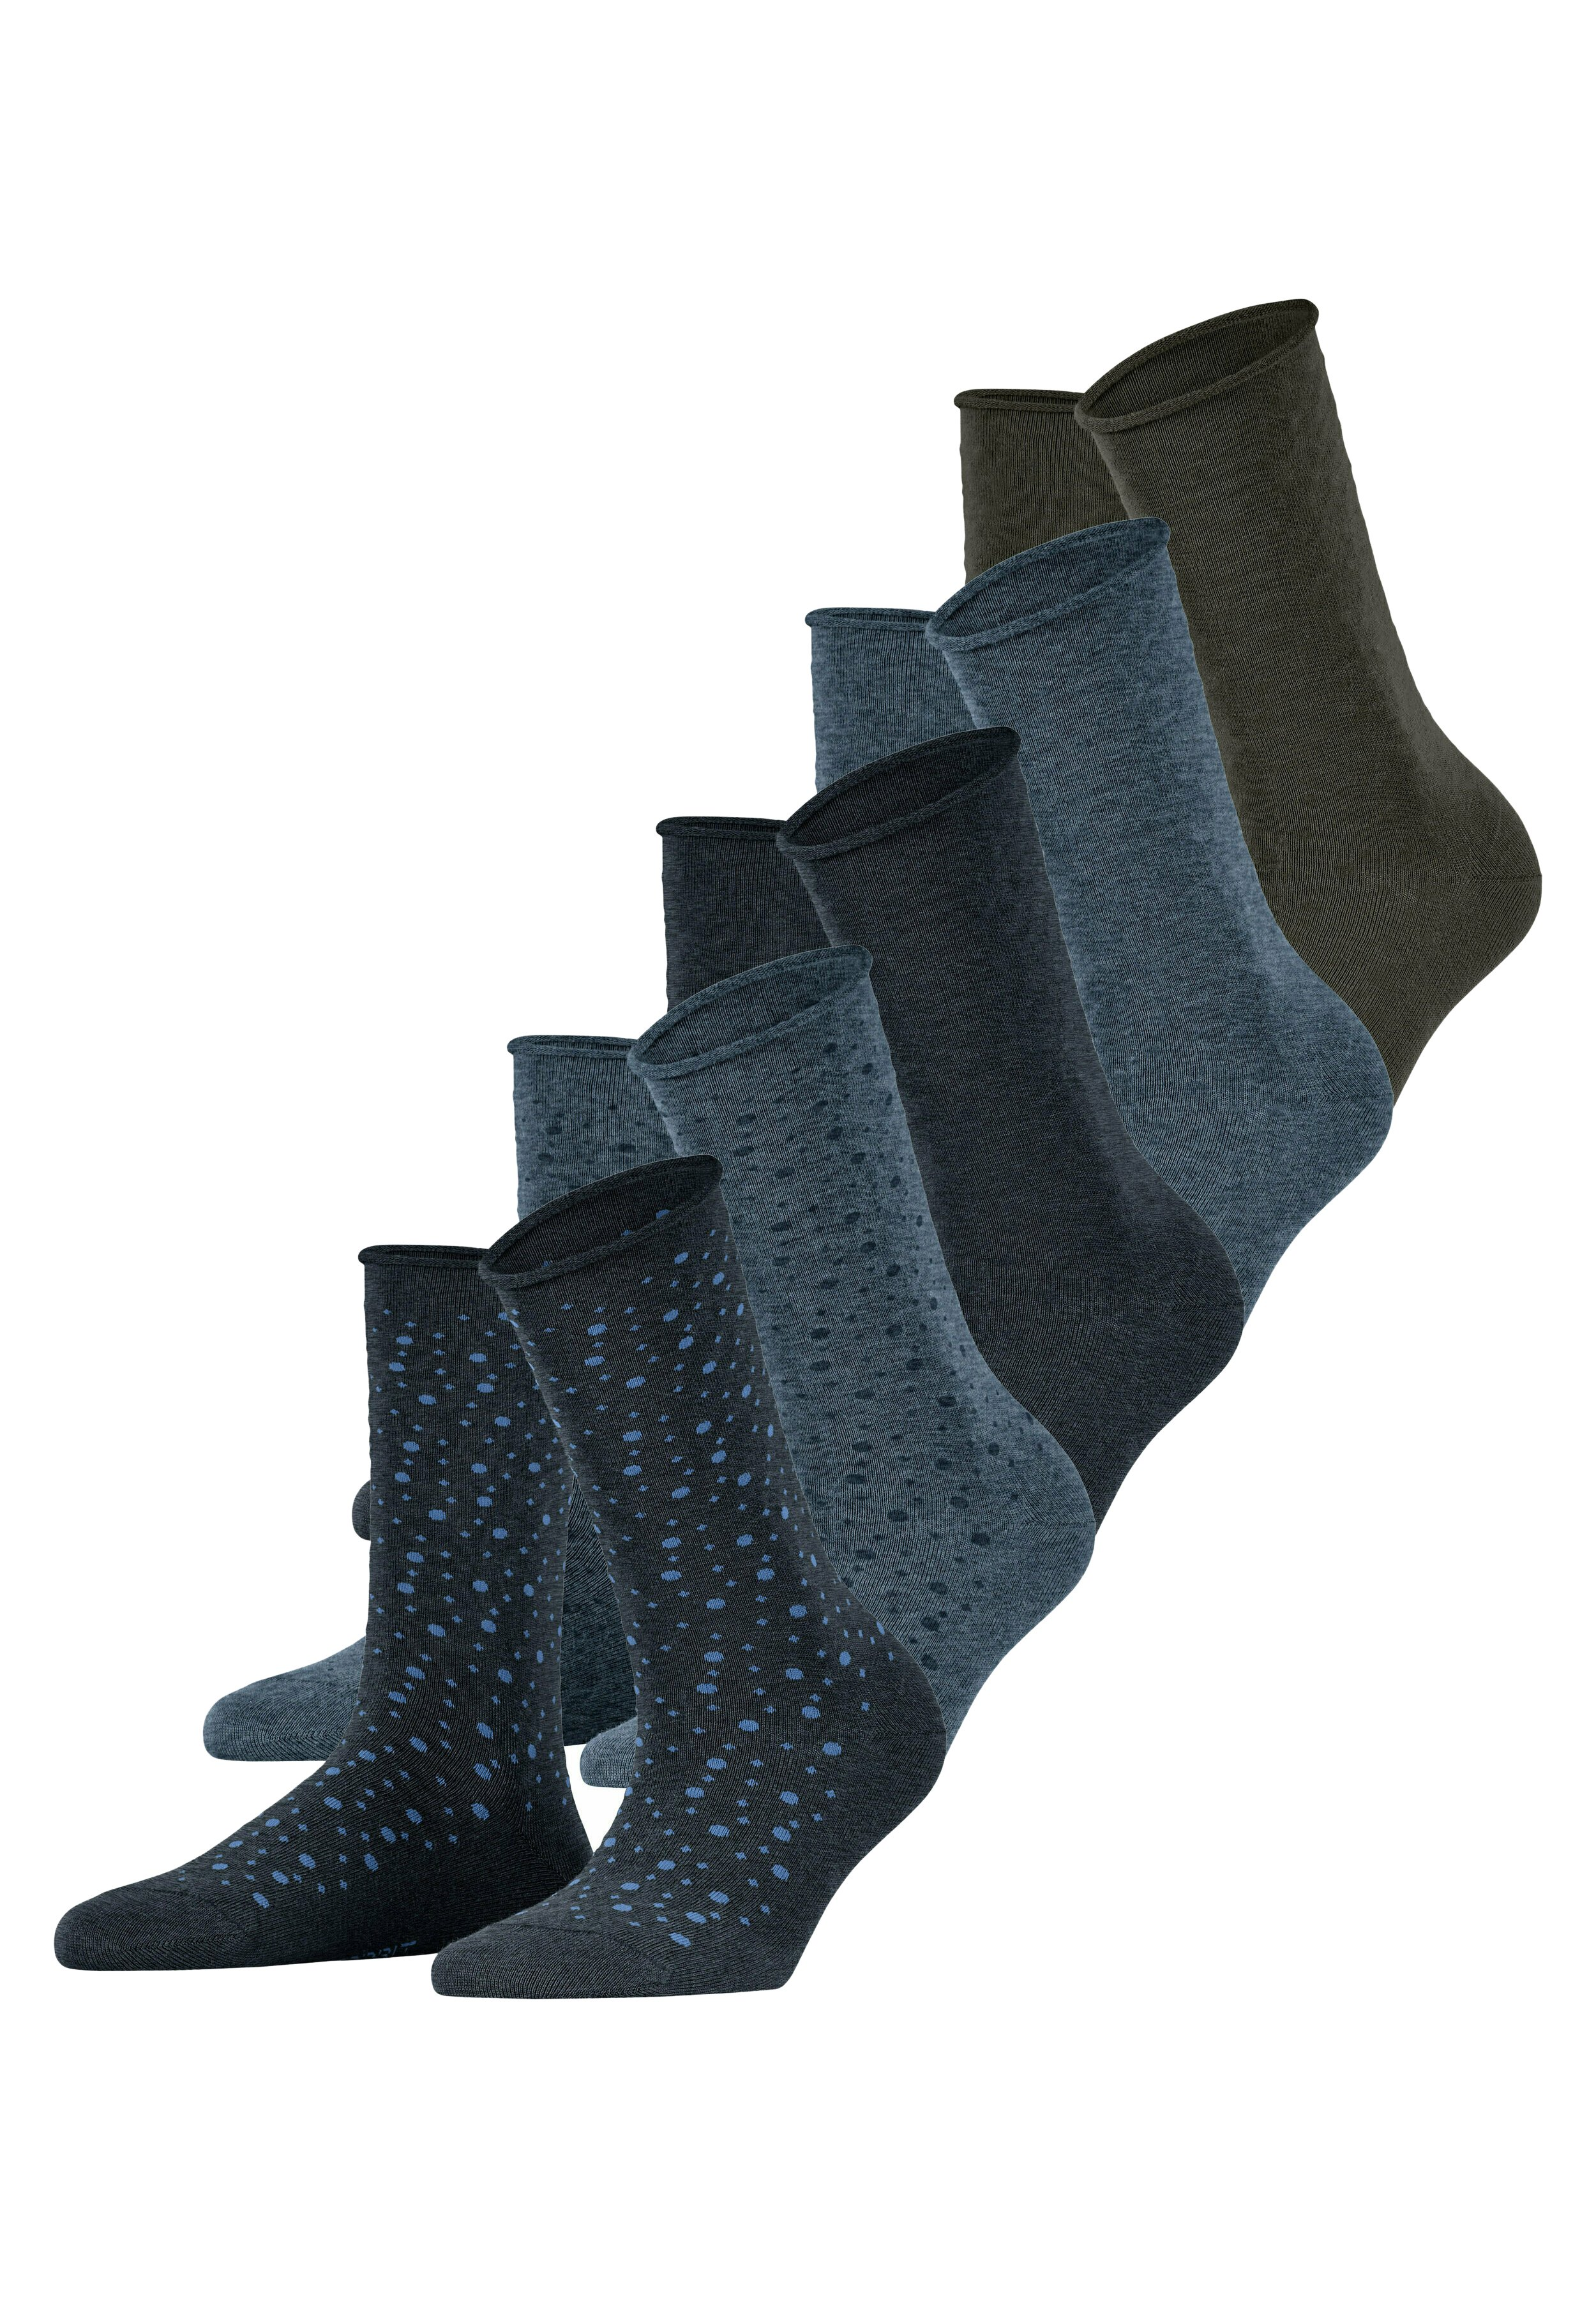 Femme 5PACK - Chaussettes